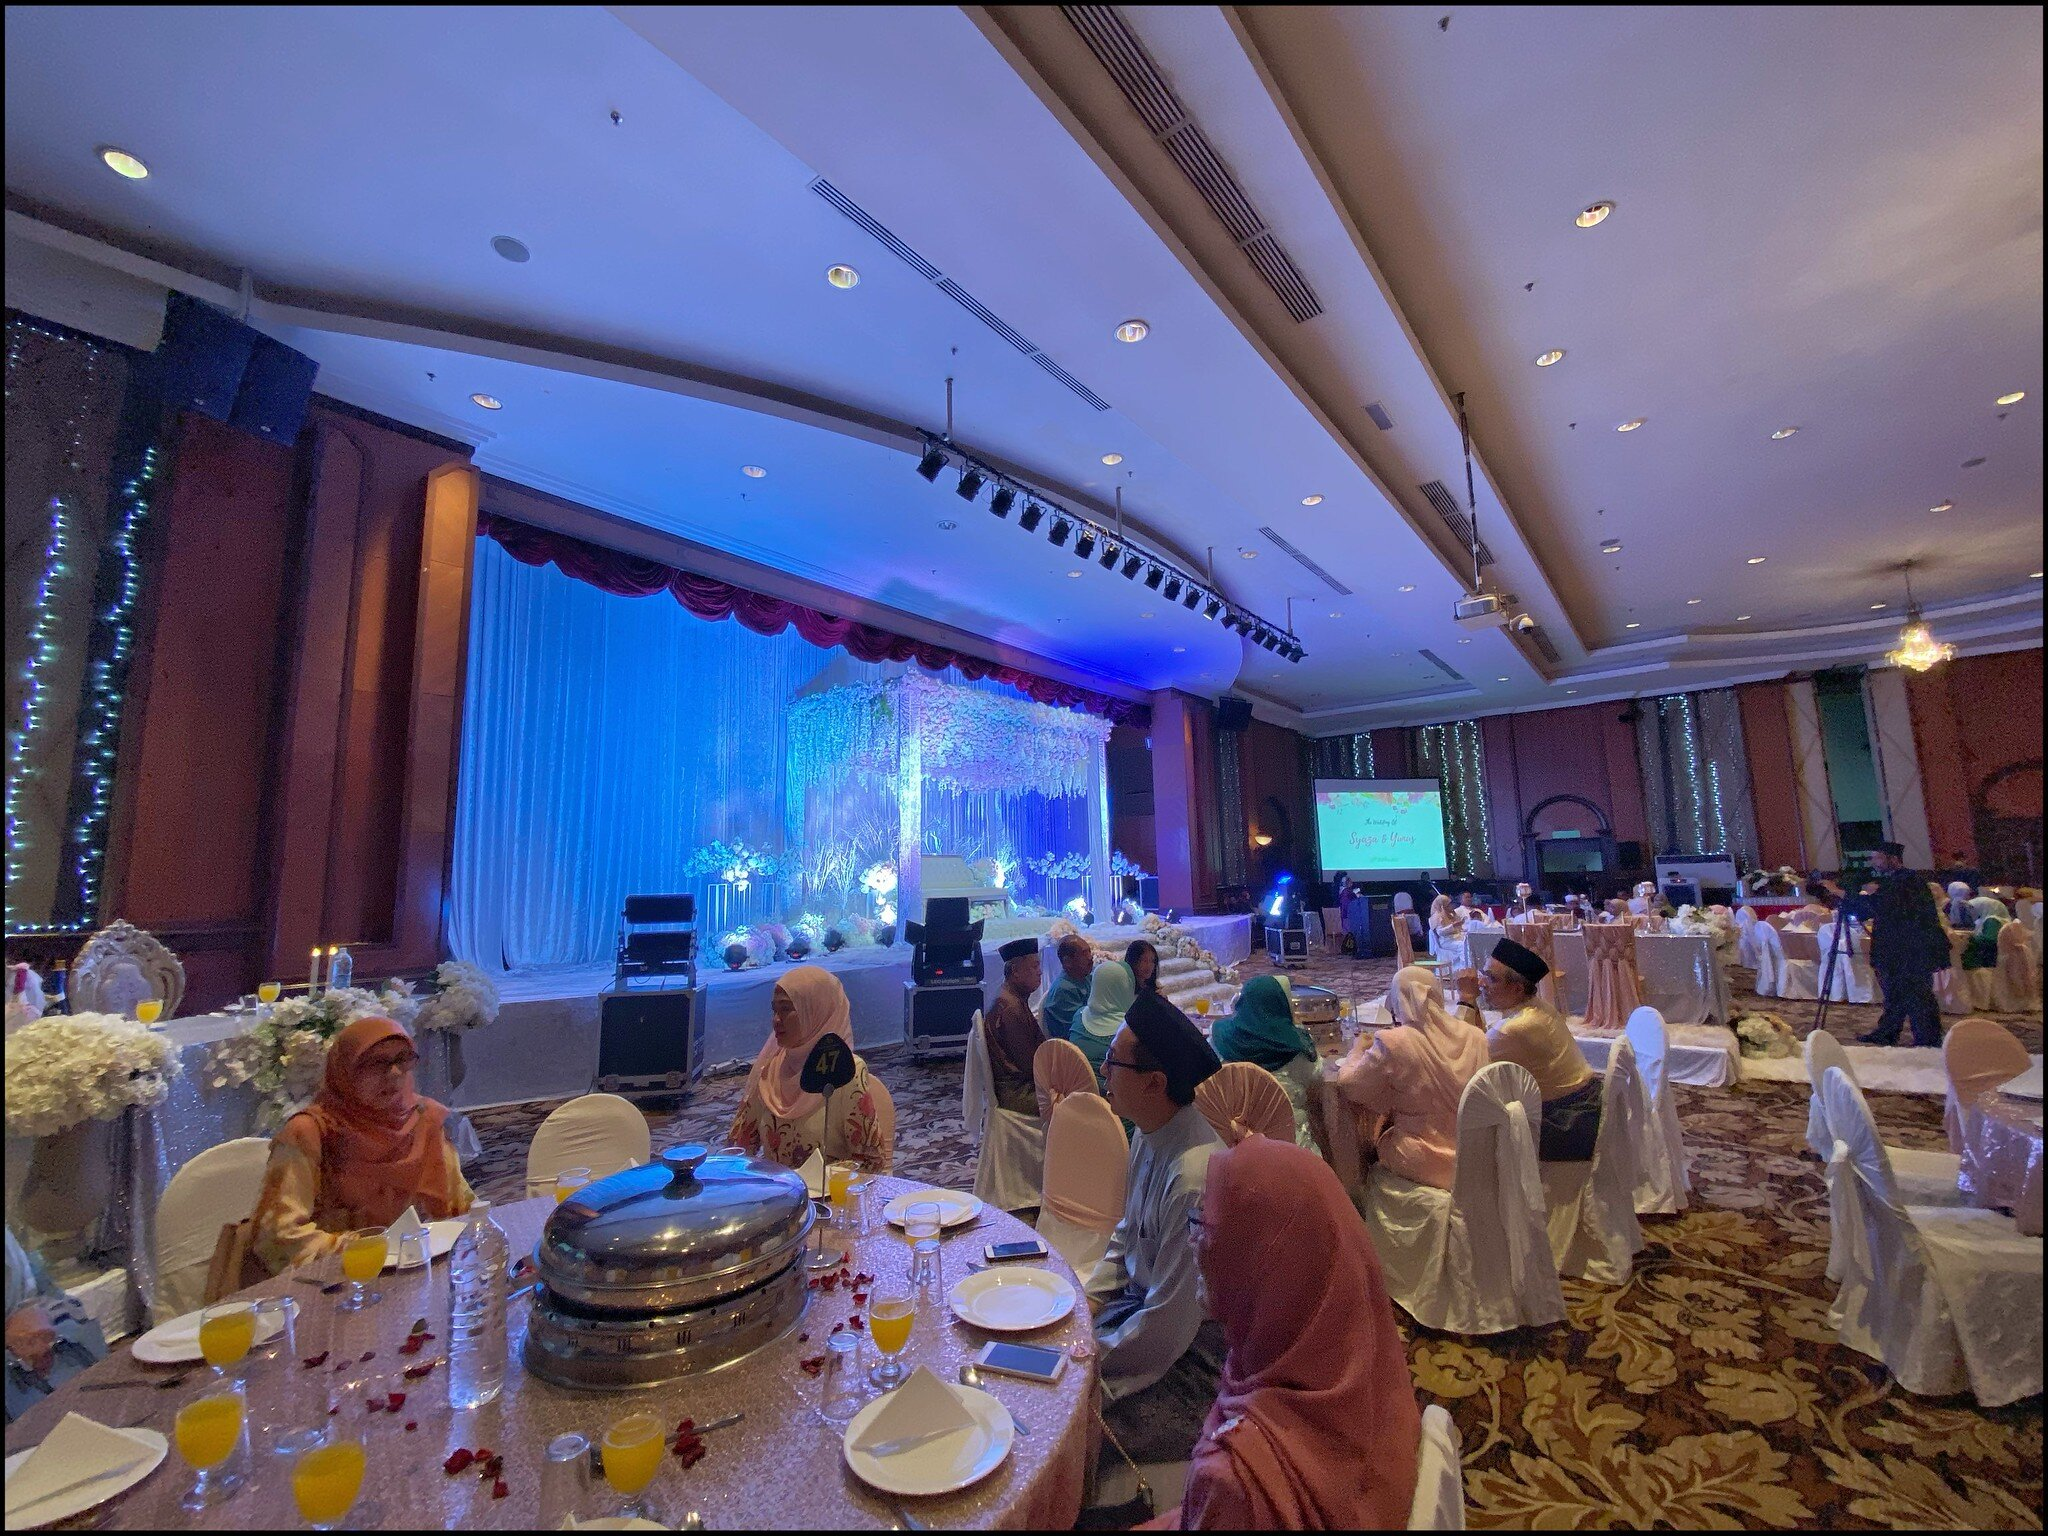 The pelamin from where I was seated